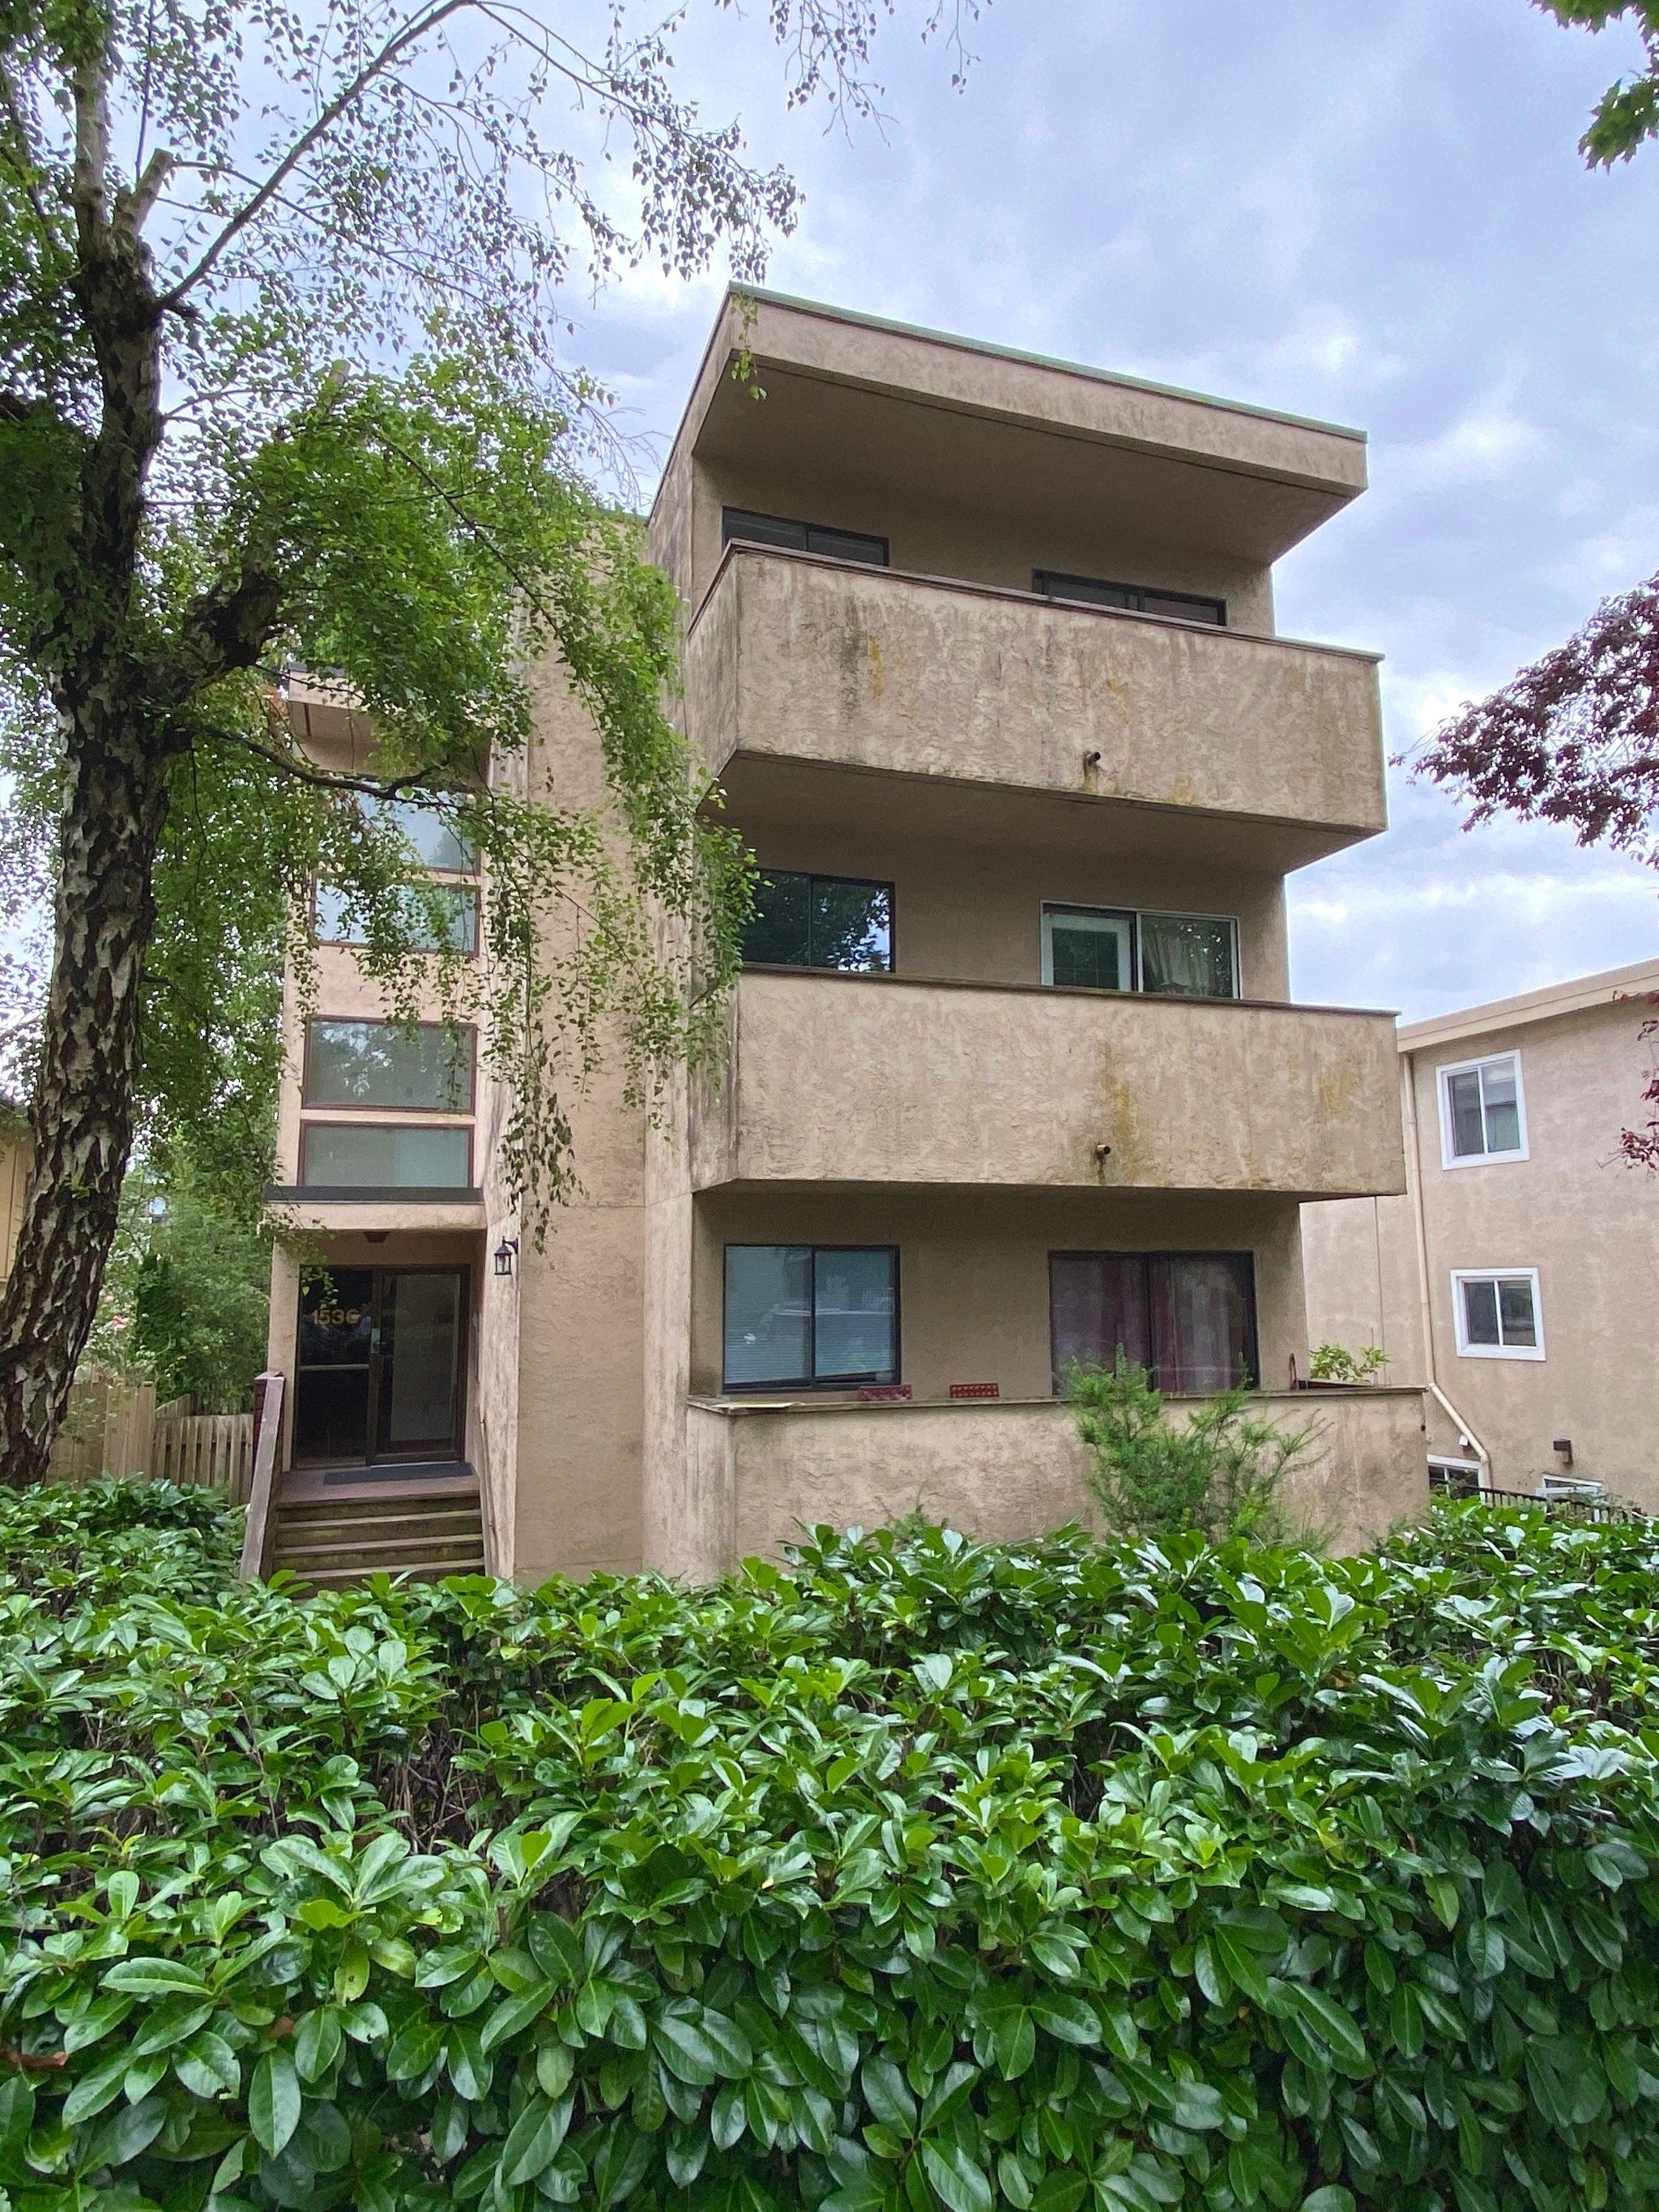 Main Photo: 1536 E. 3rd Avenue in Vancouver: Grandview Woodland VE Multifamily for sale ()